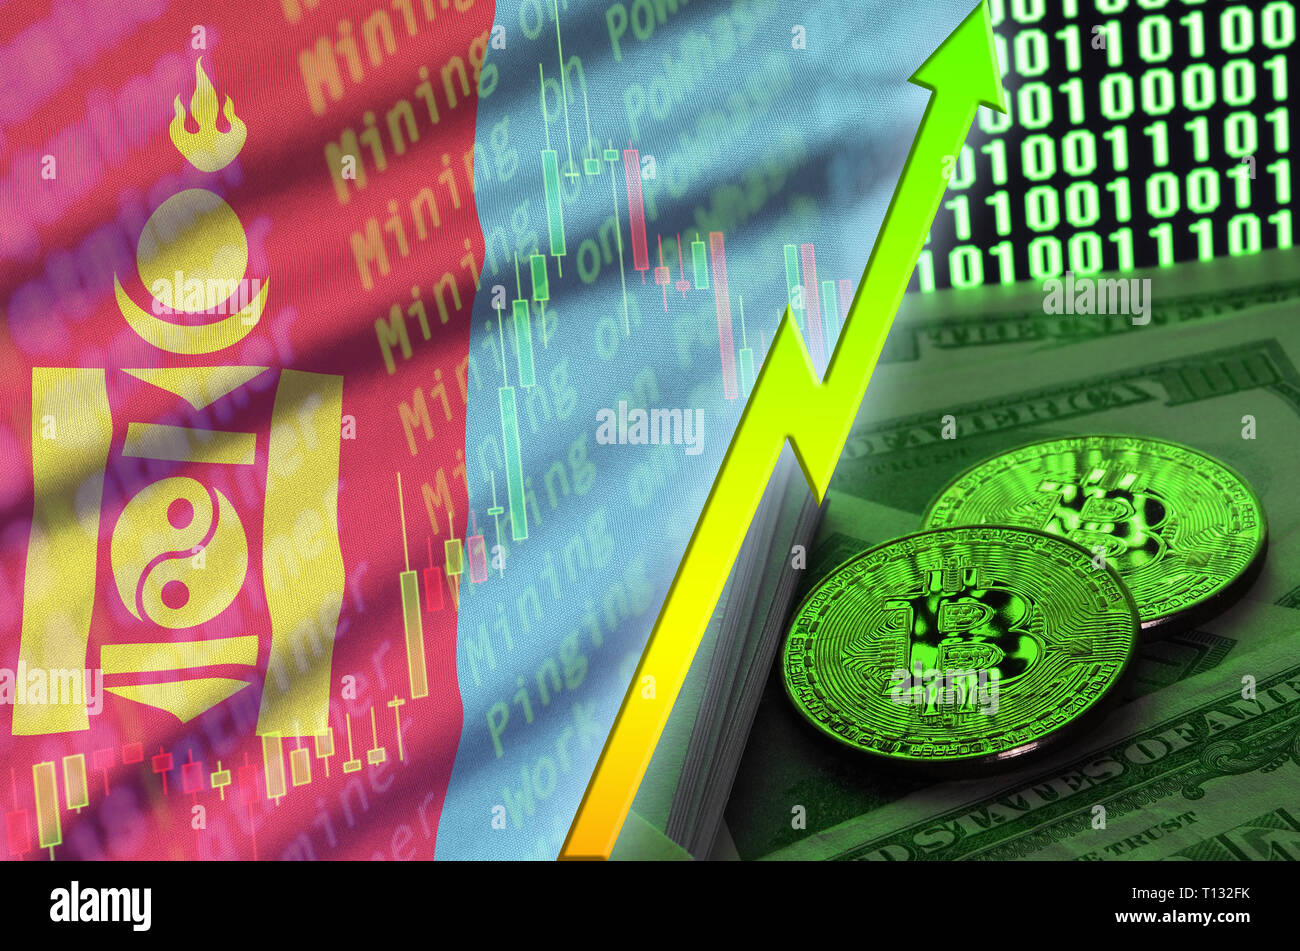 Mongolia flag and cryptocurrency growing trend with two bitcoins on dollar bills and binary code display. Concept of raising Bitcoin in price and high - Stock Image